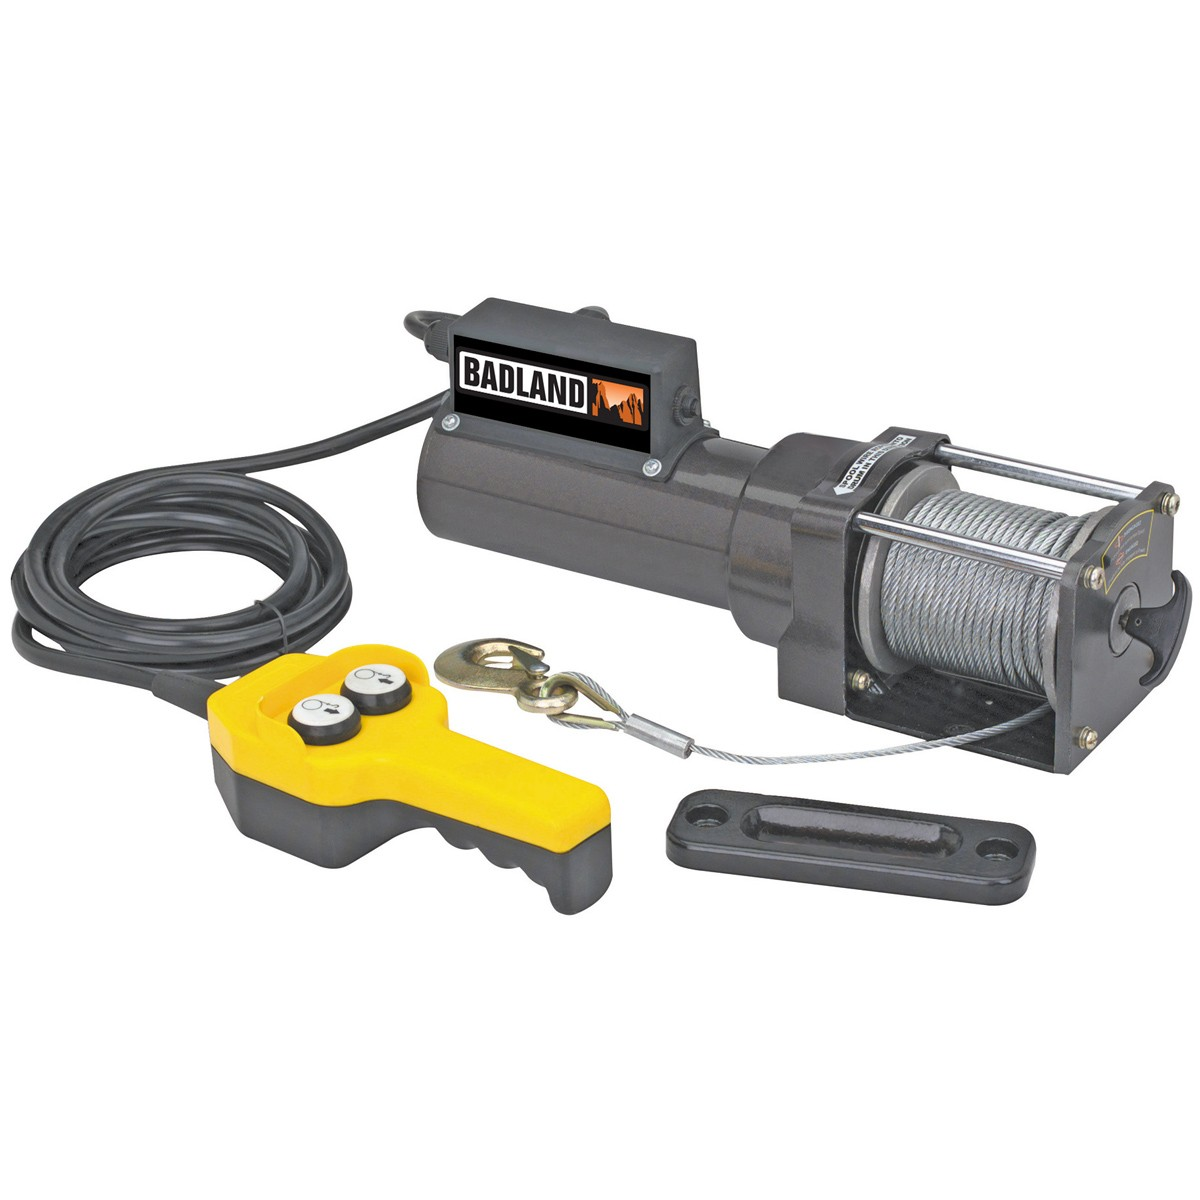 hight resolution of badland electric winch 1500 lb capacity 120 volt ac hoist control 96127 walmart com